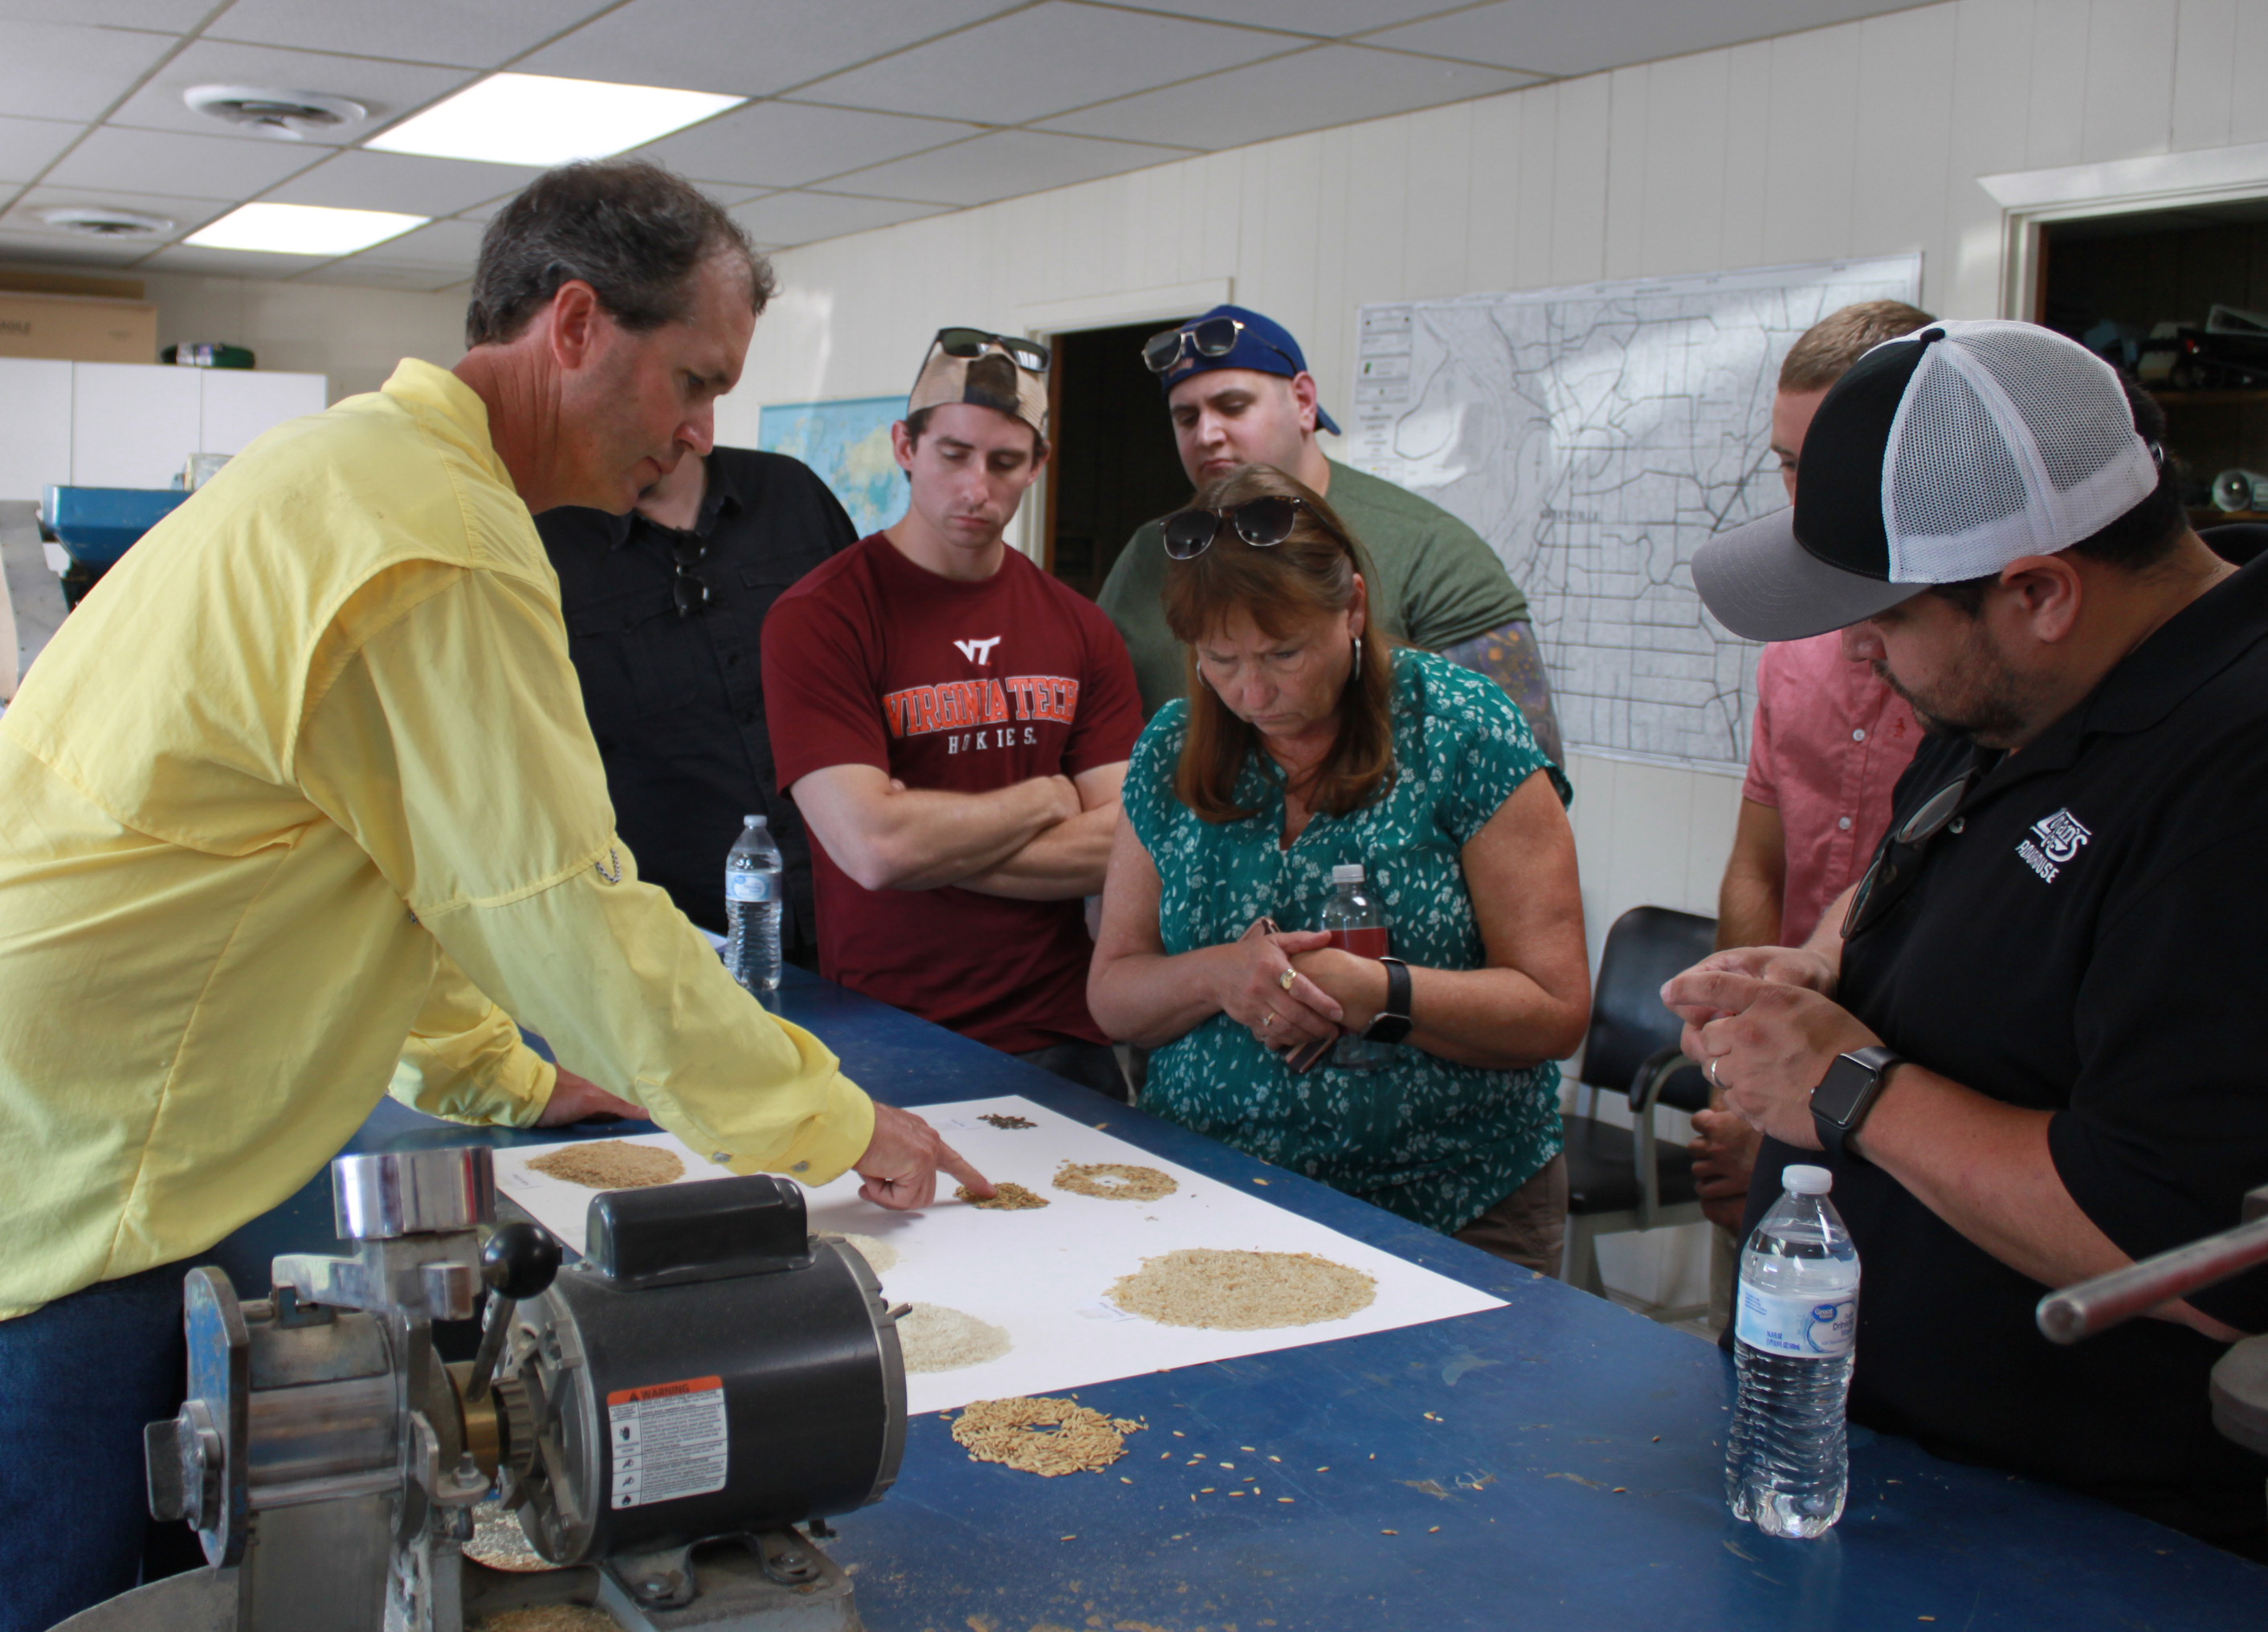 People gathered around blue-topped table for milling demo